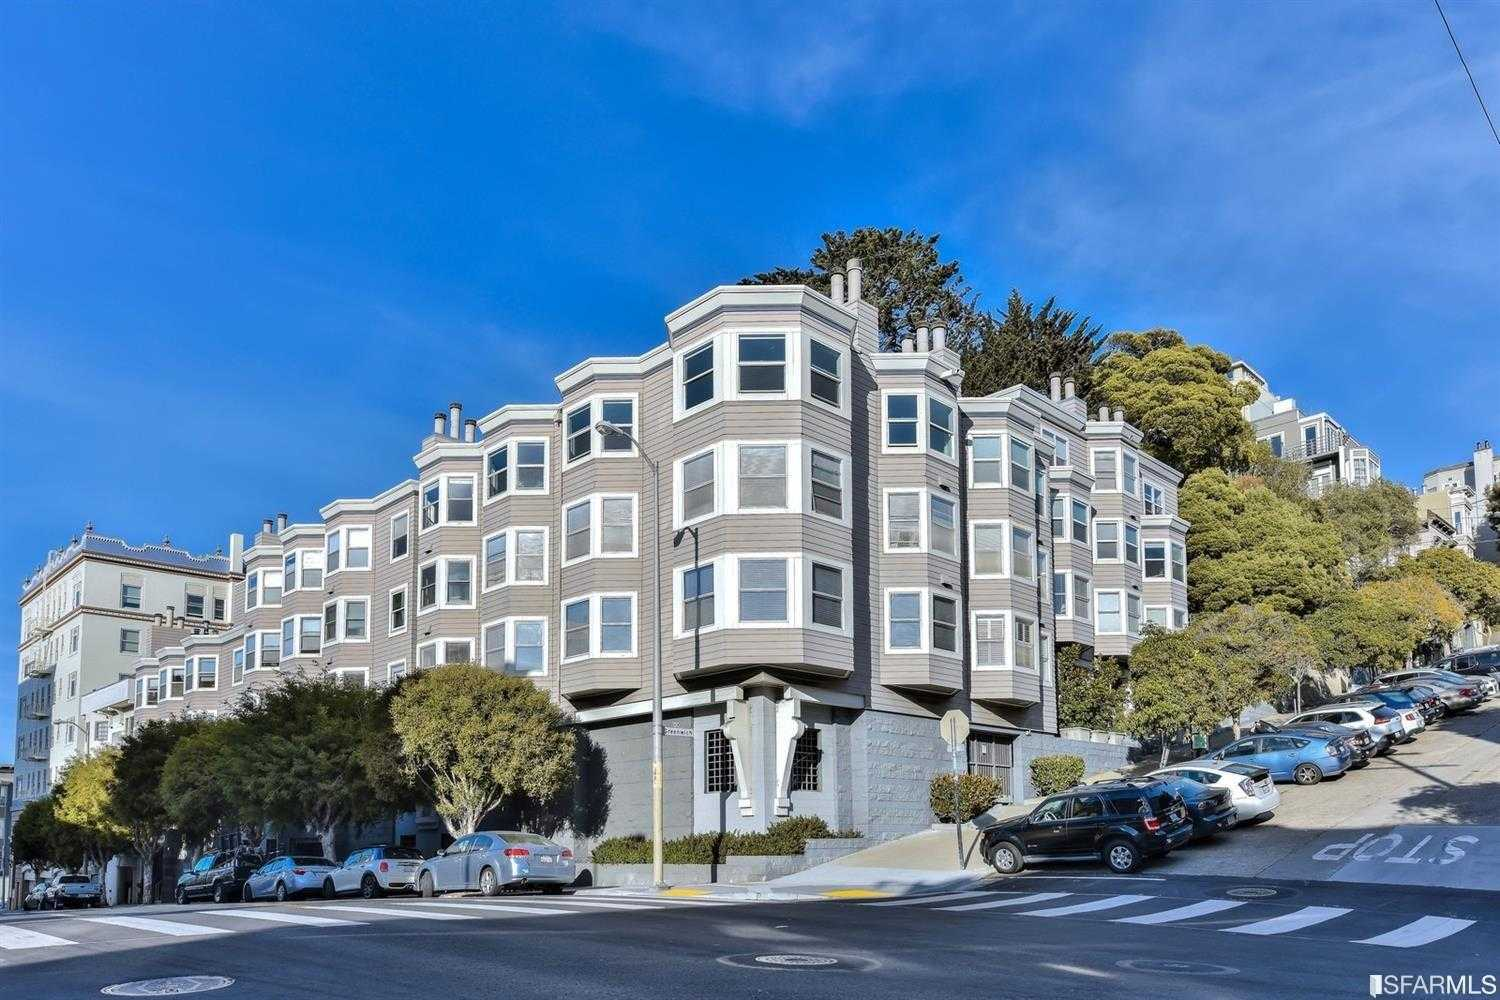 1380 Greenwich St Apt 203 San Francisco, CA 94109